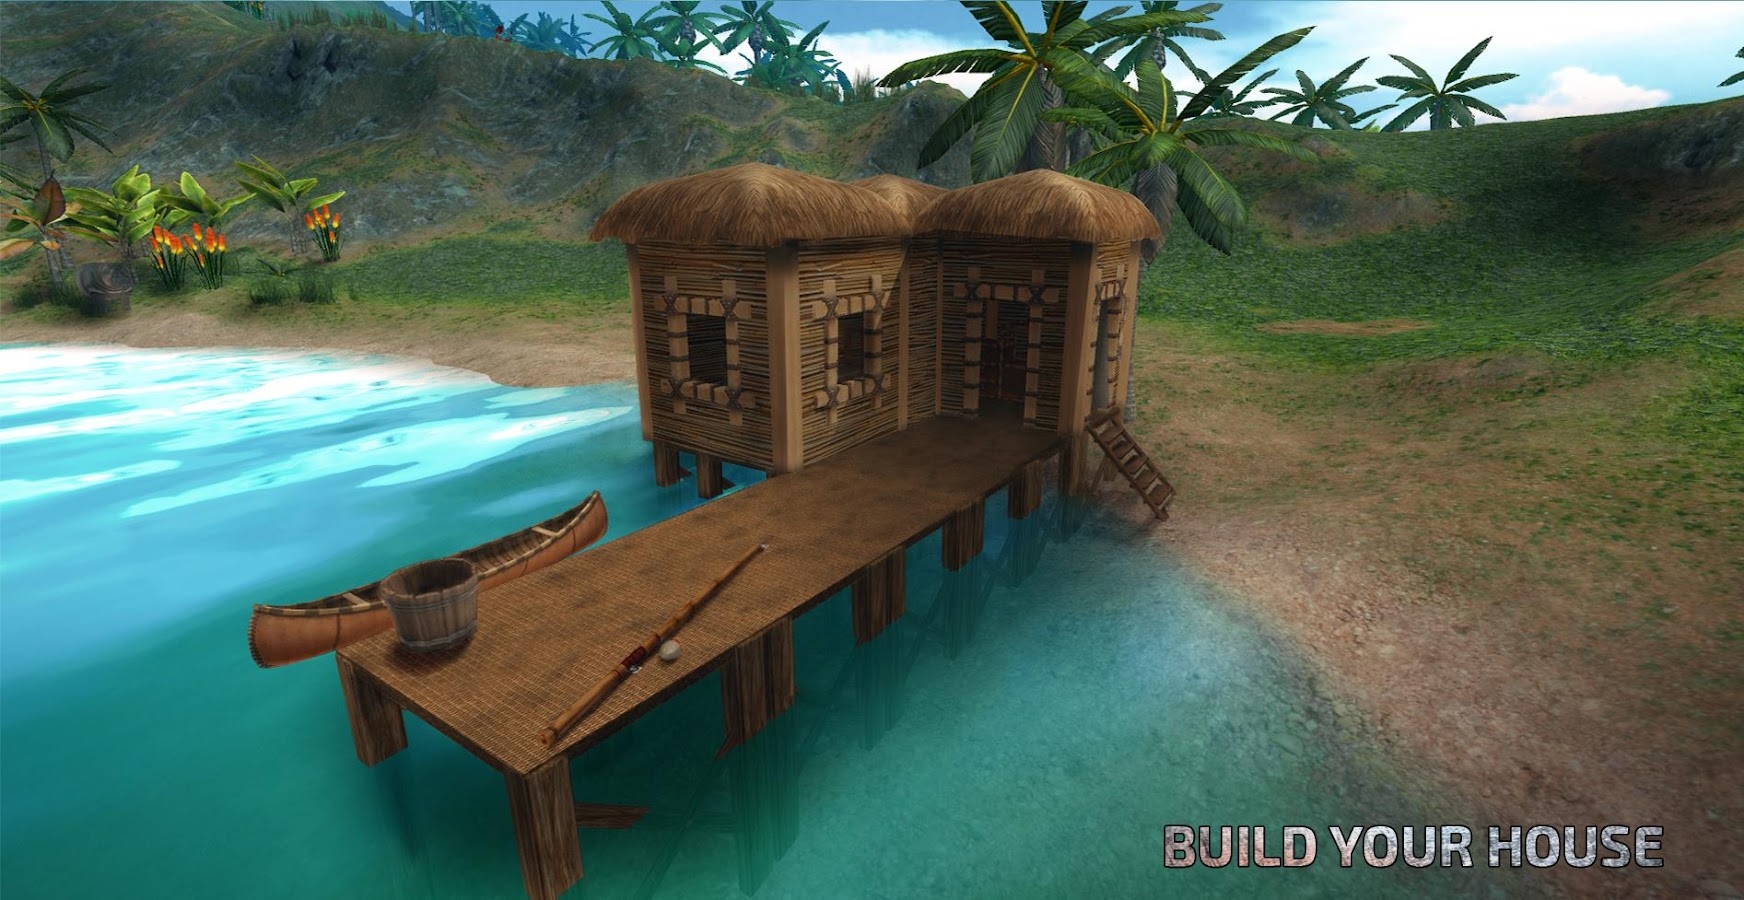 Survival island evolve survivor building home android for Things to know when building a house